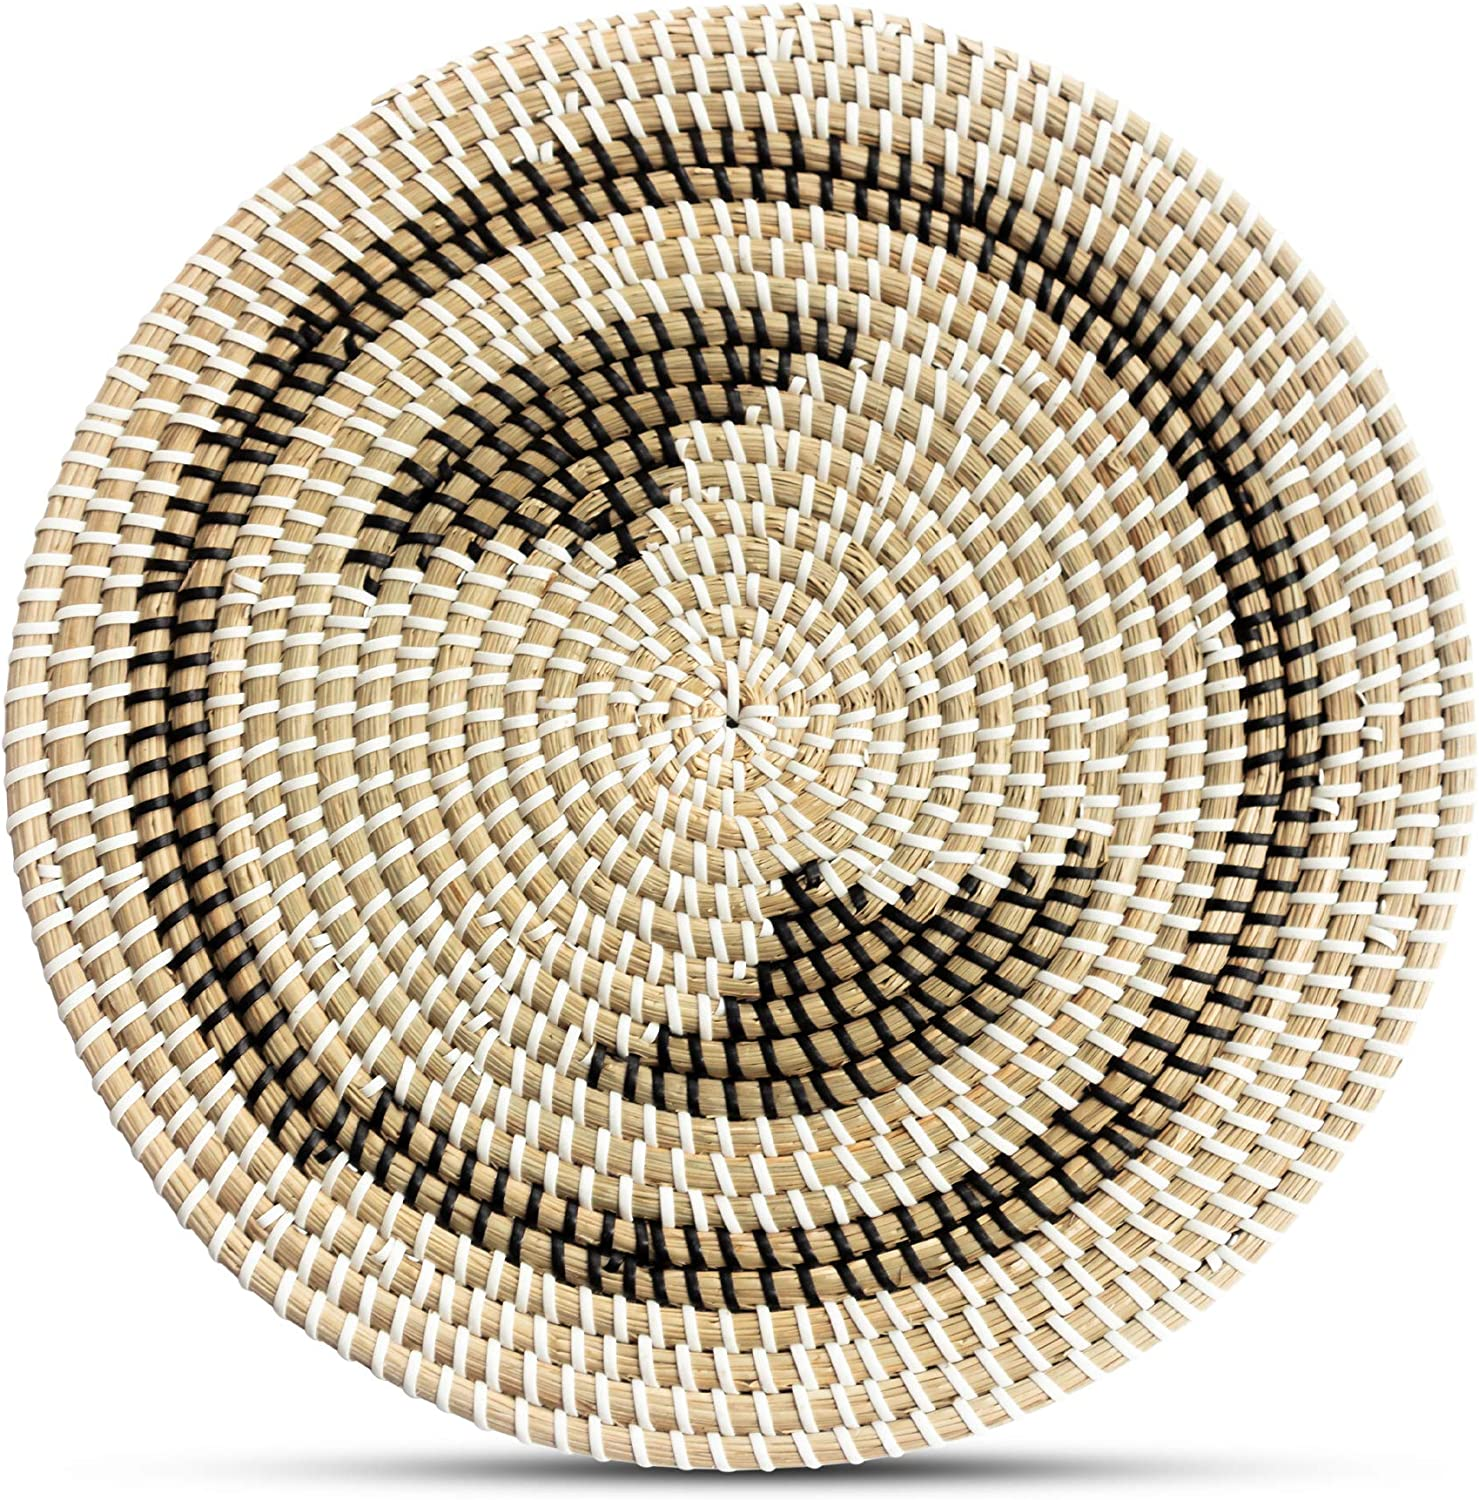 Rattan Trivets for Hot Dishes - Woven Trivets Handmade Placemats for Dining Table - Boho Wall Hanging Decorative Plate - Rattan Wall Decor - Subtle Gifts for Friends (30cm/11.7in)